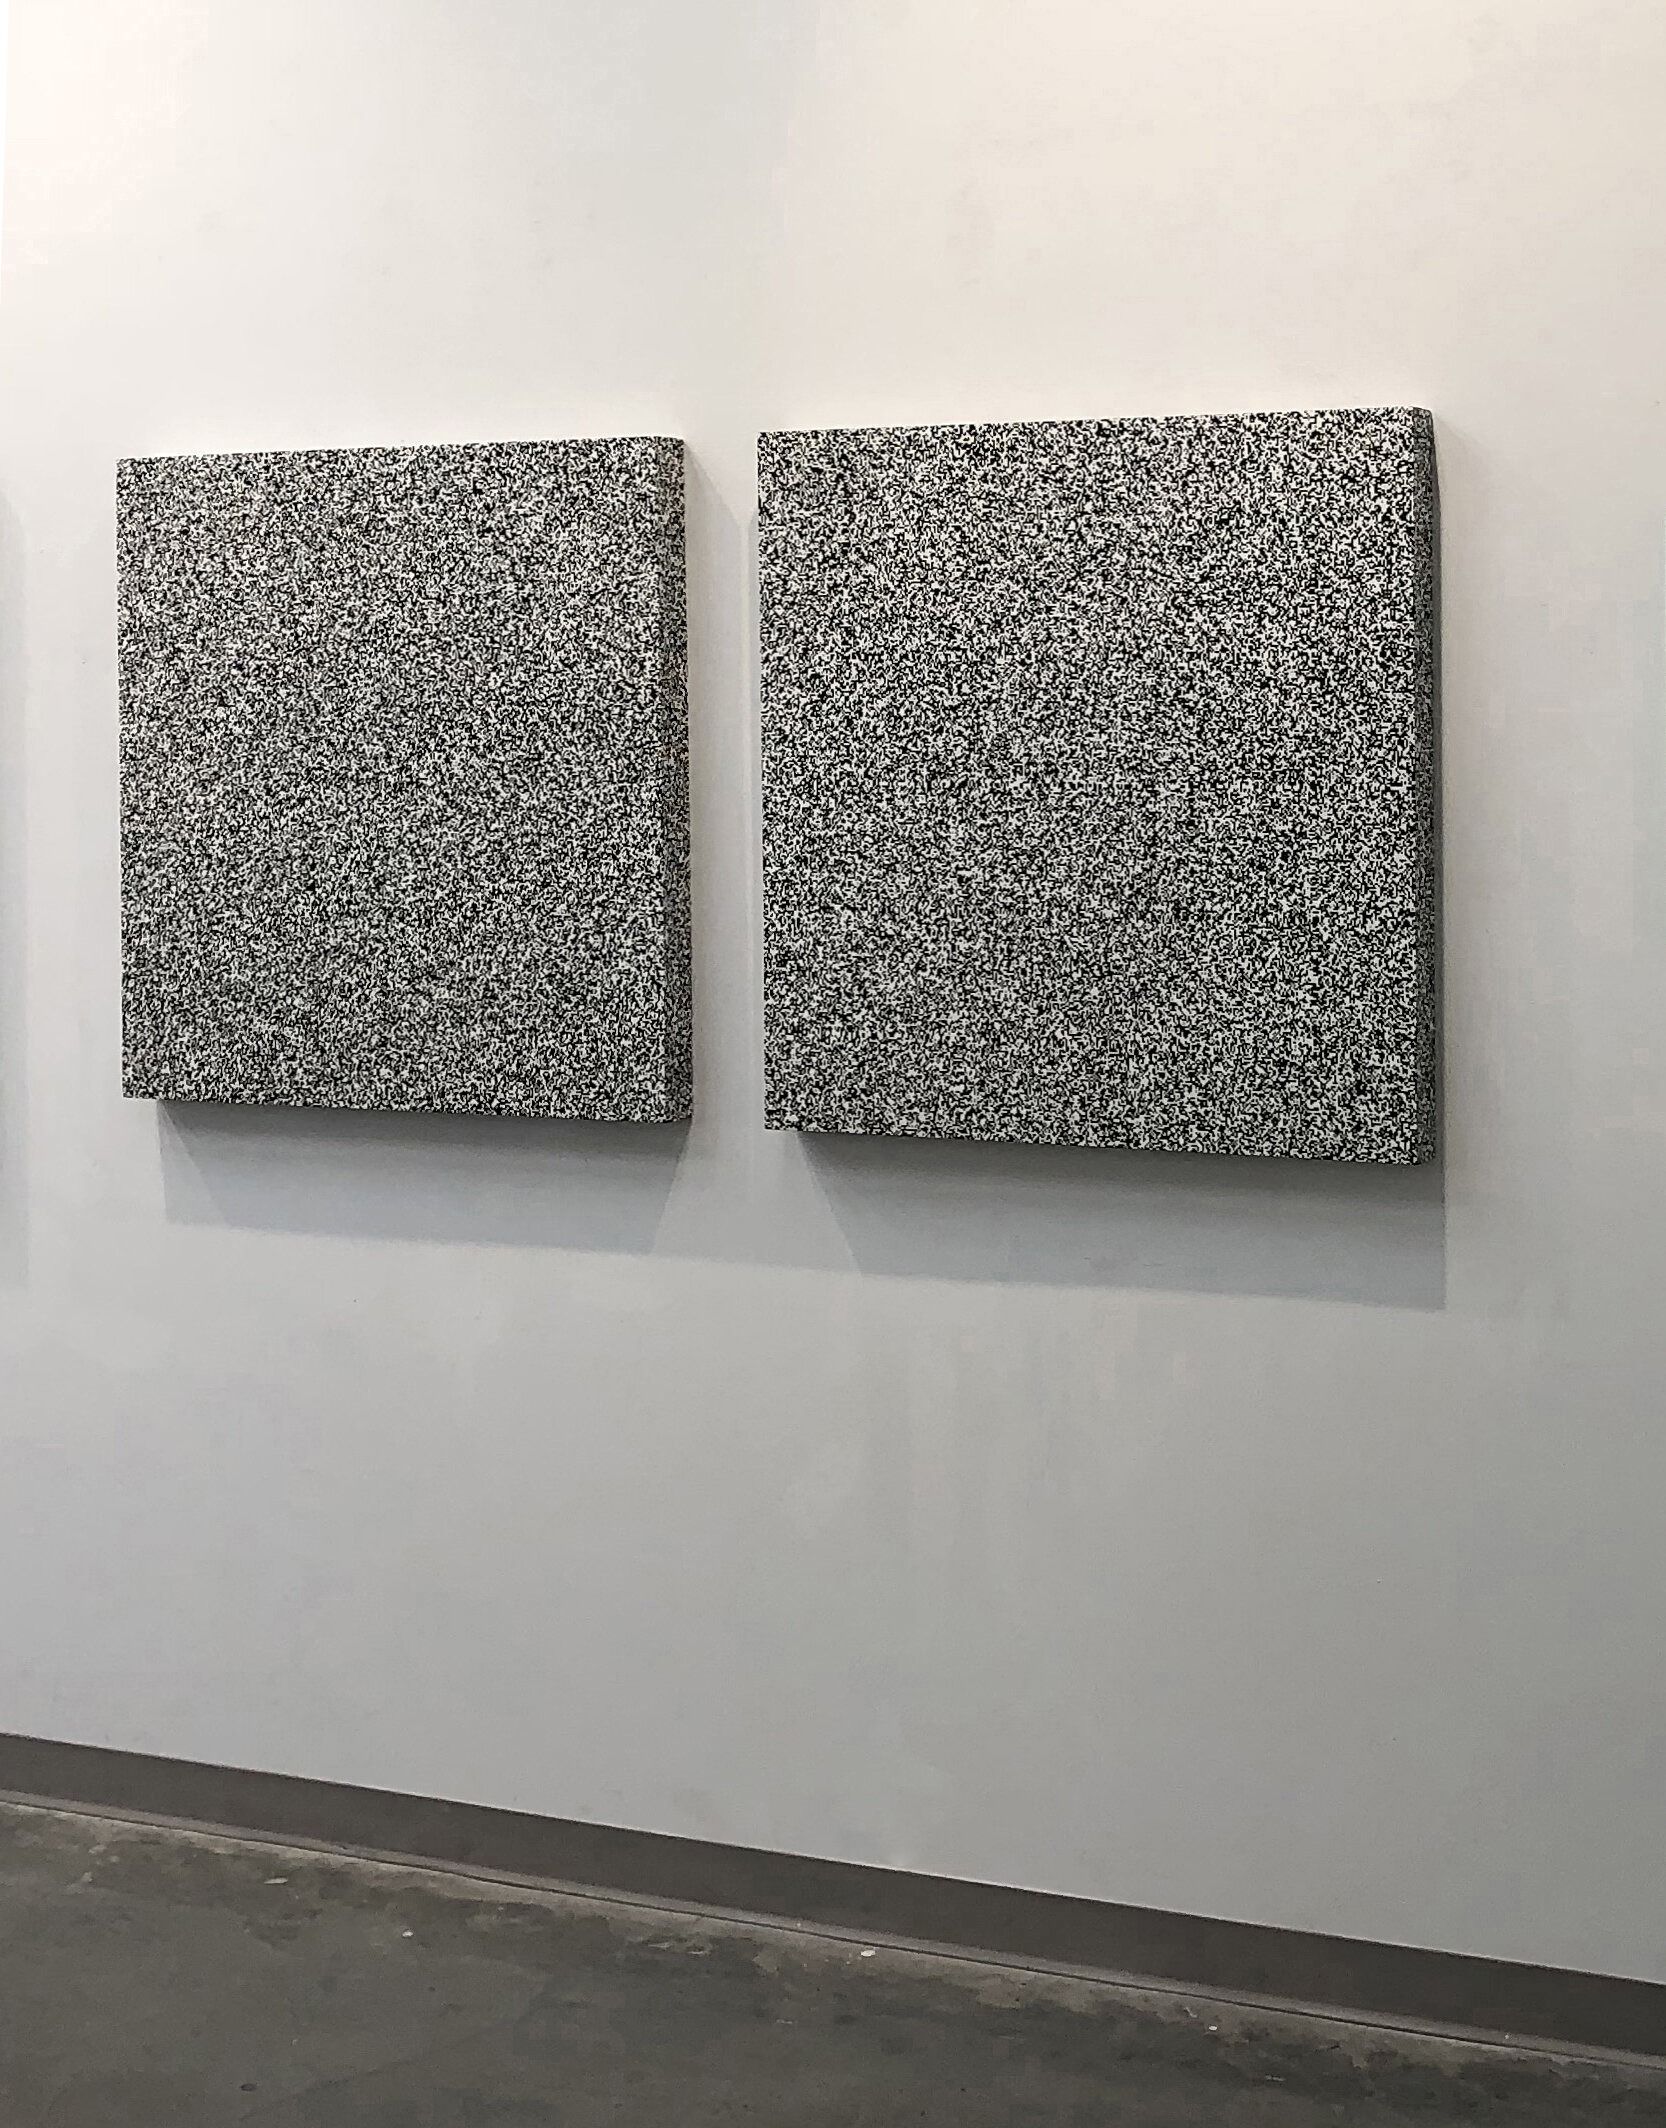 Michael Edward Miller  Static (diptych prototype) , 2018, (36 x 36 x 2 5/8 in) x 2, stencilled spray paint on panel